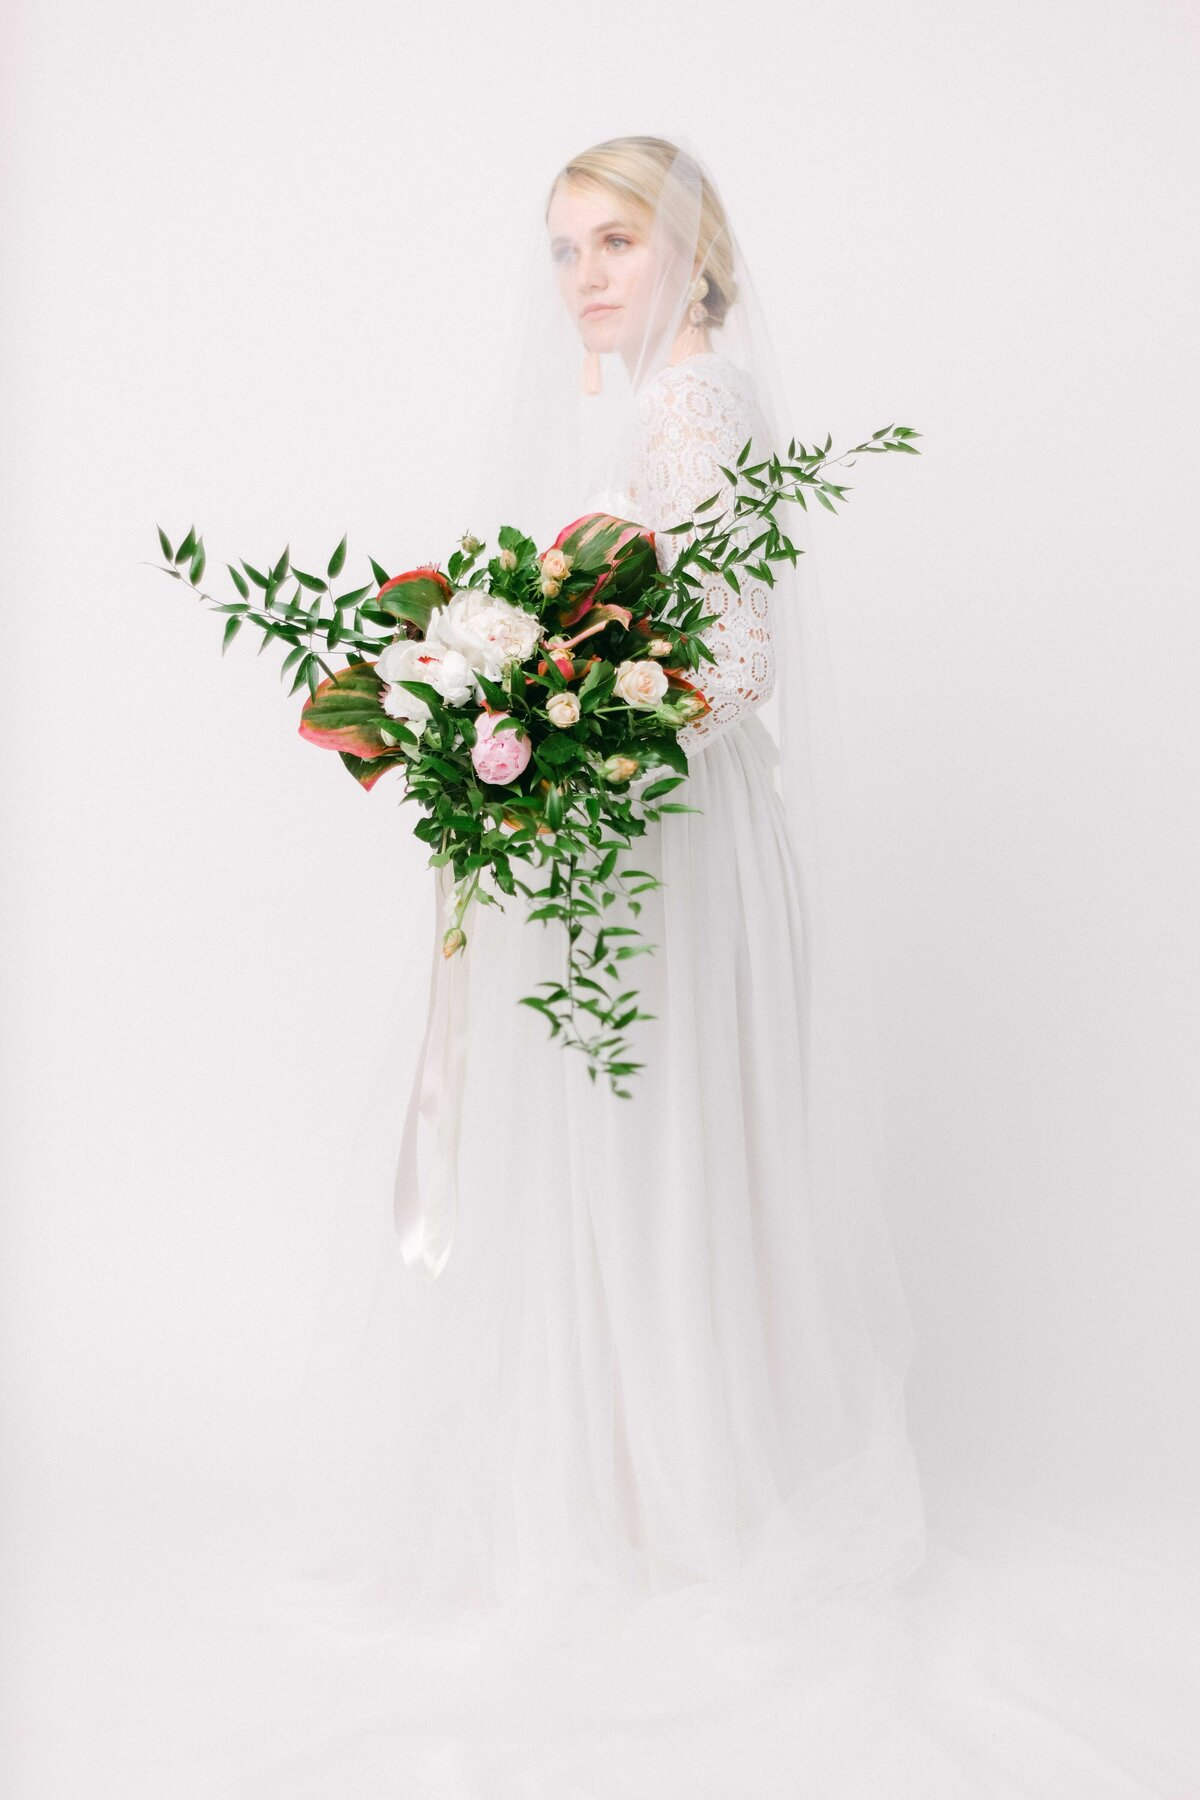 Bridal-Photography-Studio-San-Diego-Bouquet-Veil-Babsie